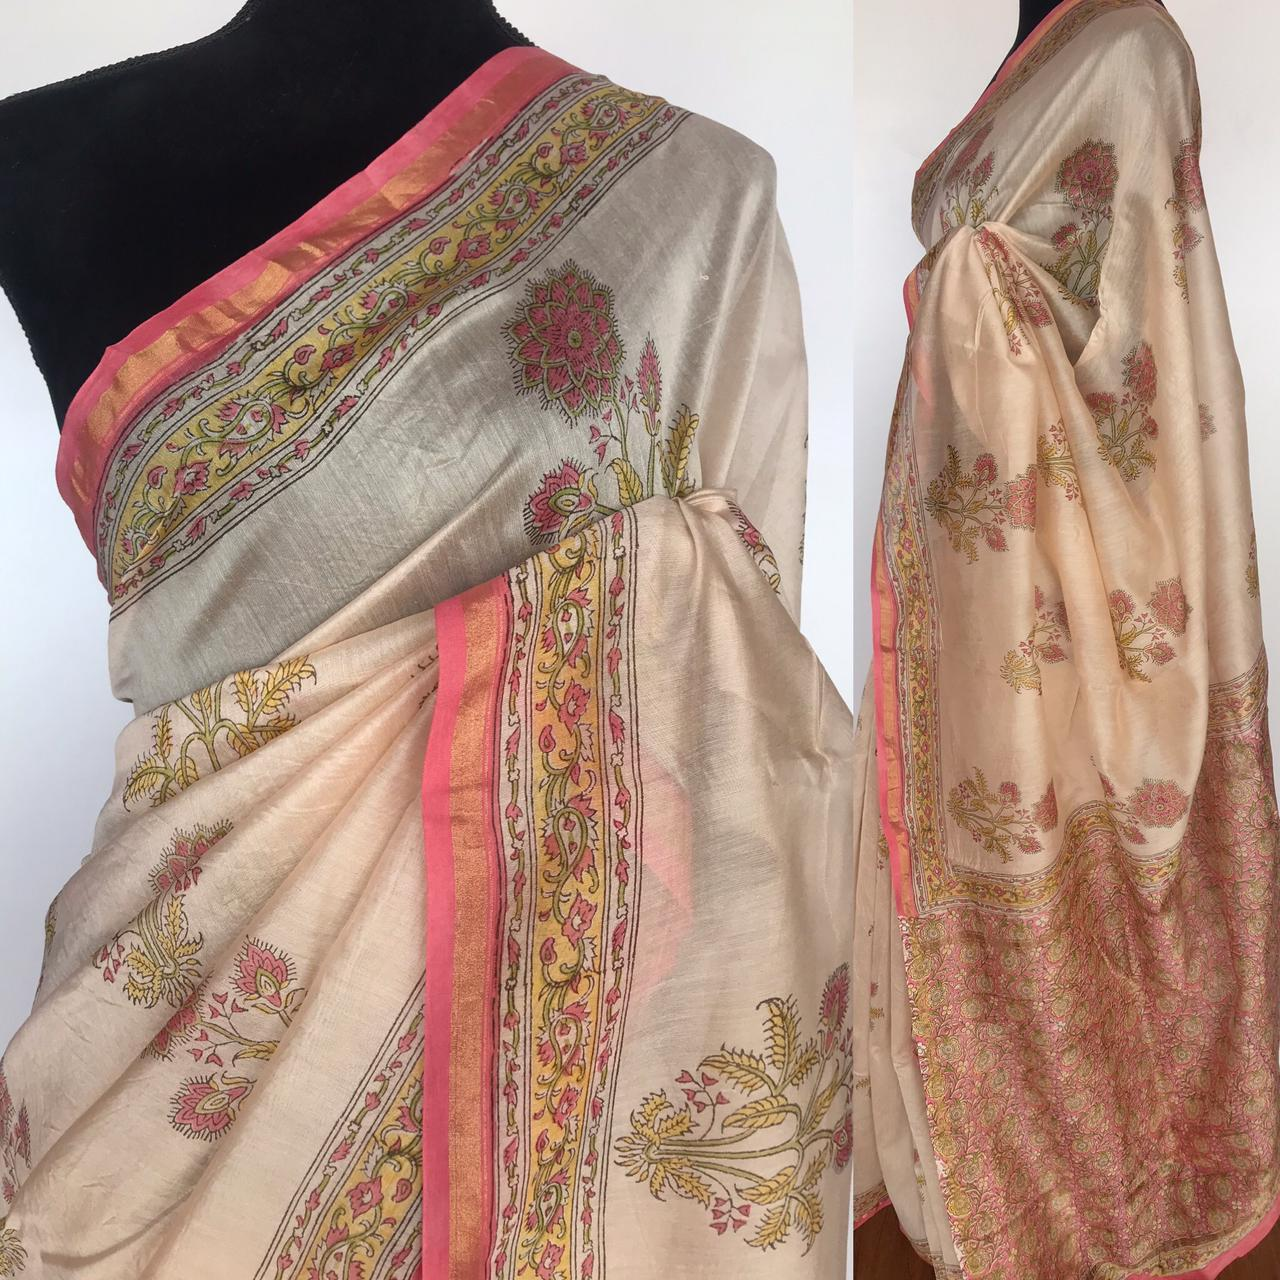 Exclusive Online Women's Clothing Shopping: Buy Sarees, Blouses, Lehengas, Kurtis and; Salwar Suits